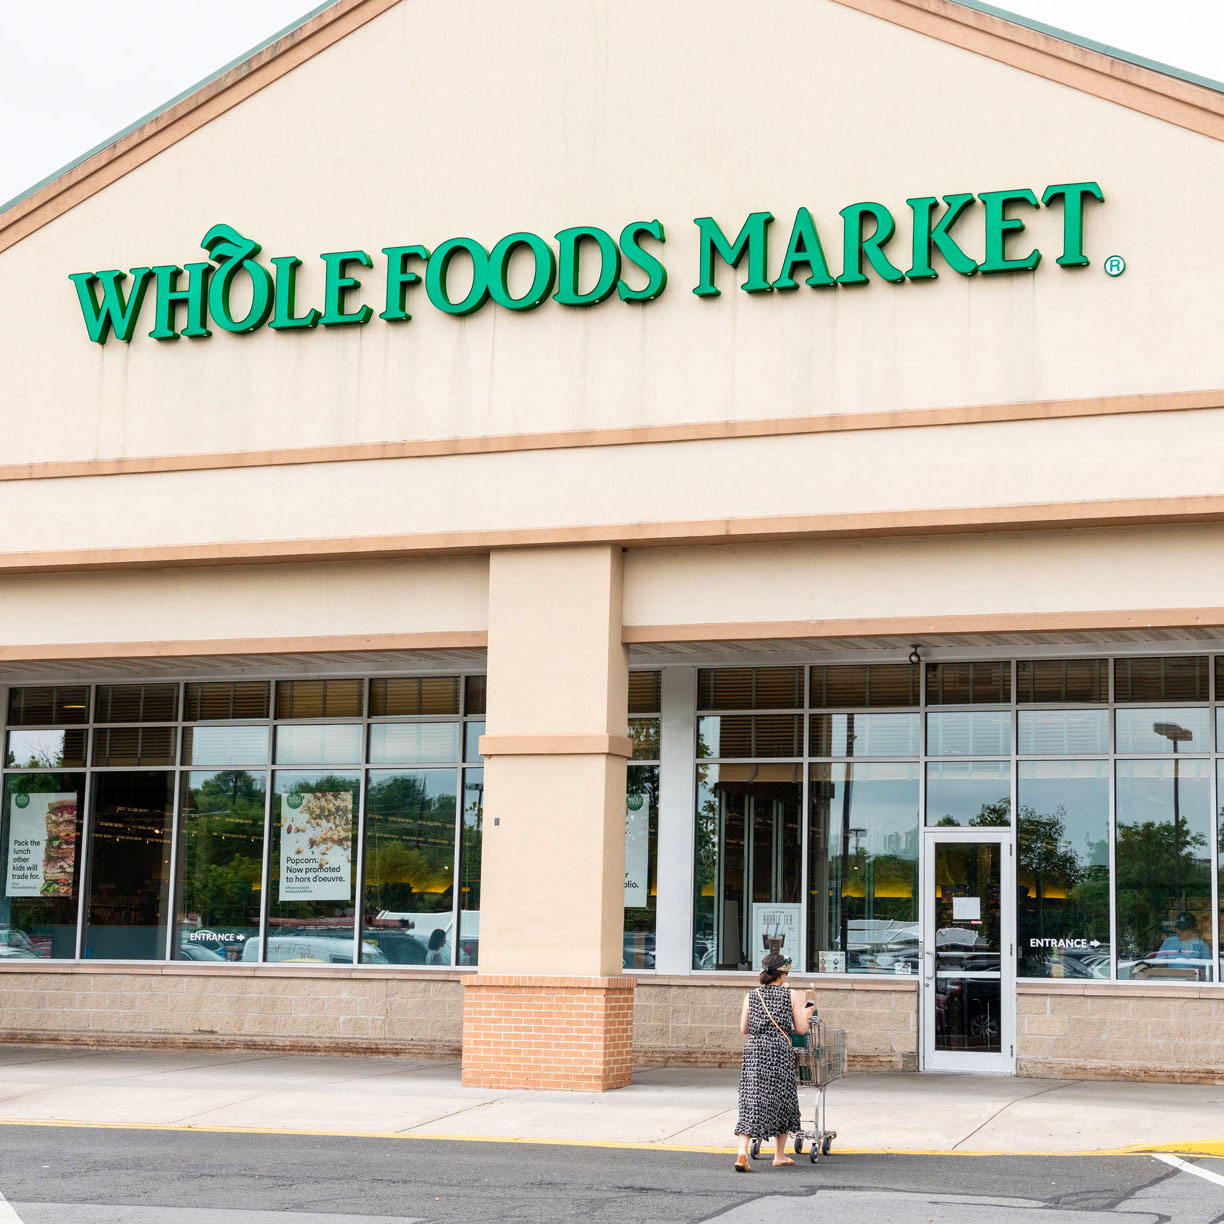 Whole Foods Market storefront